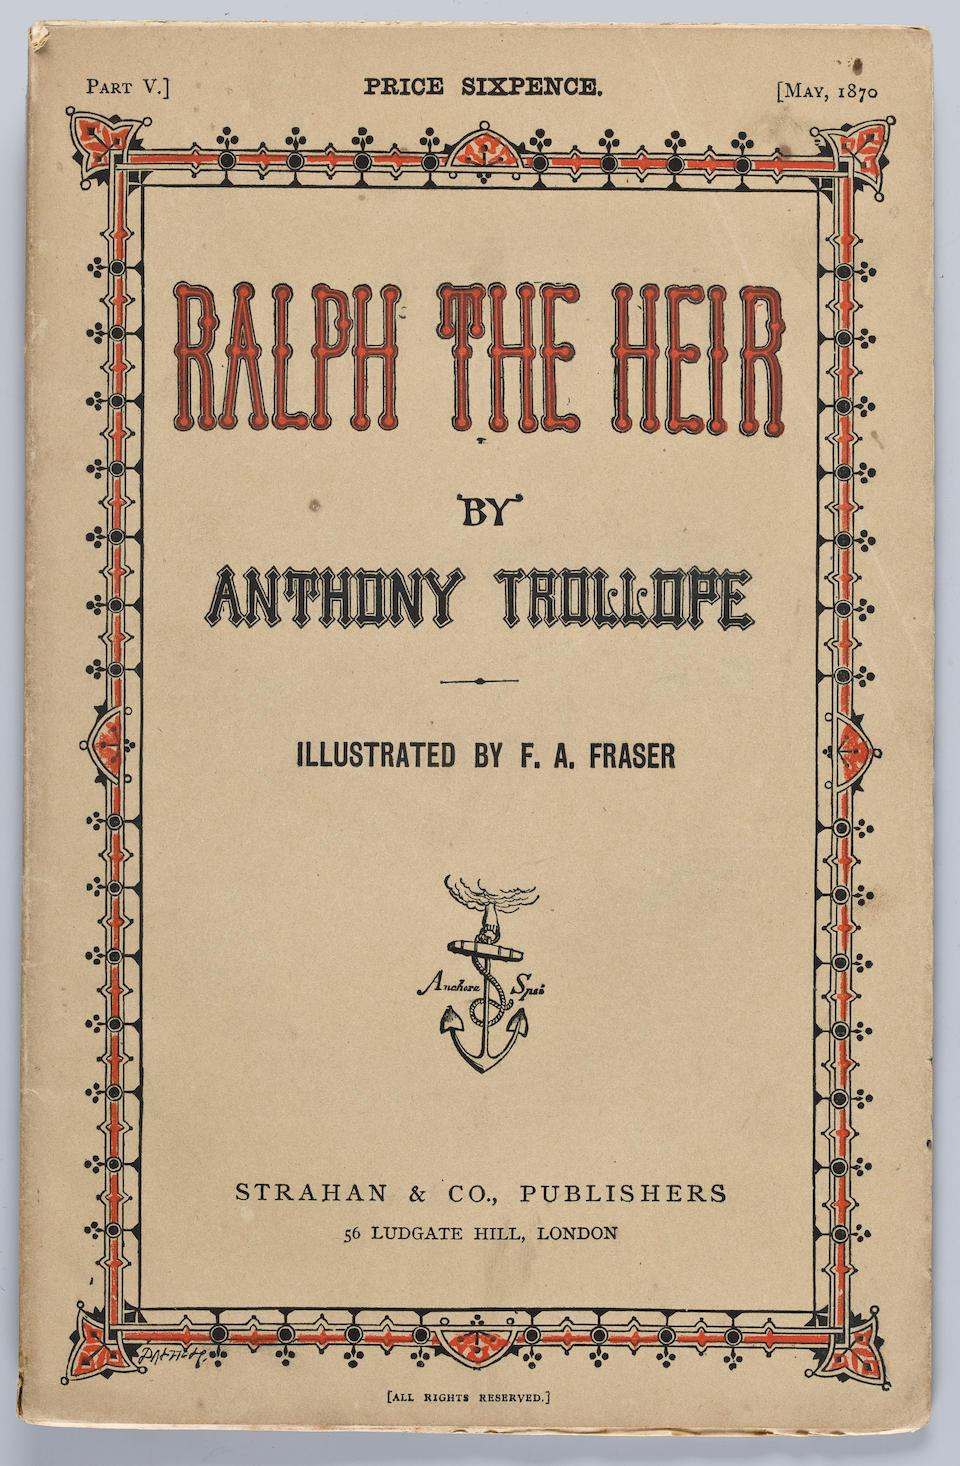 TROLLOPE, ANTHONY. 1815-1882. Ralph the Heir. London: Strahan & Co., January 1870-July 1871.